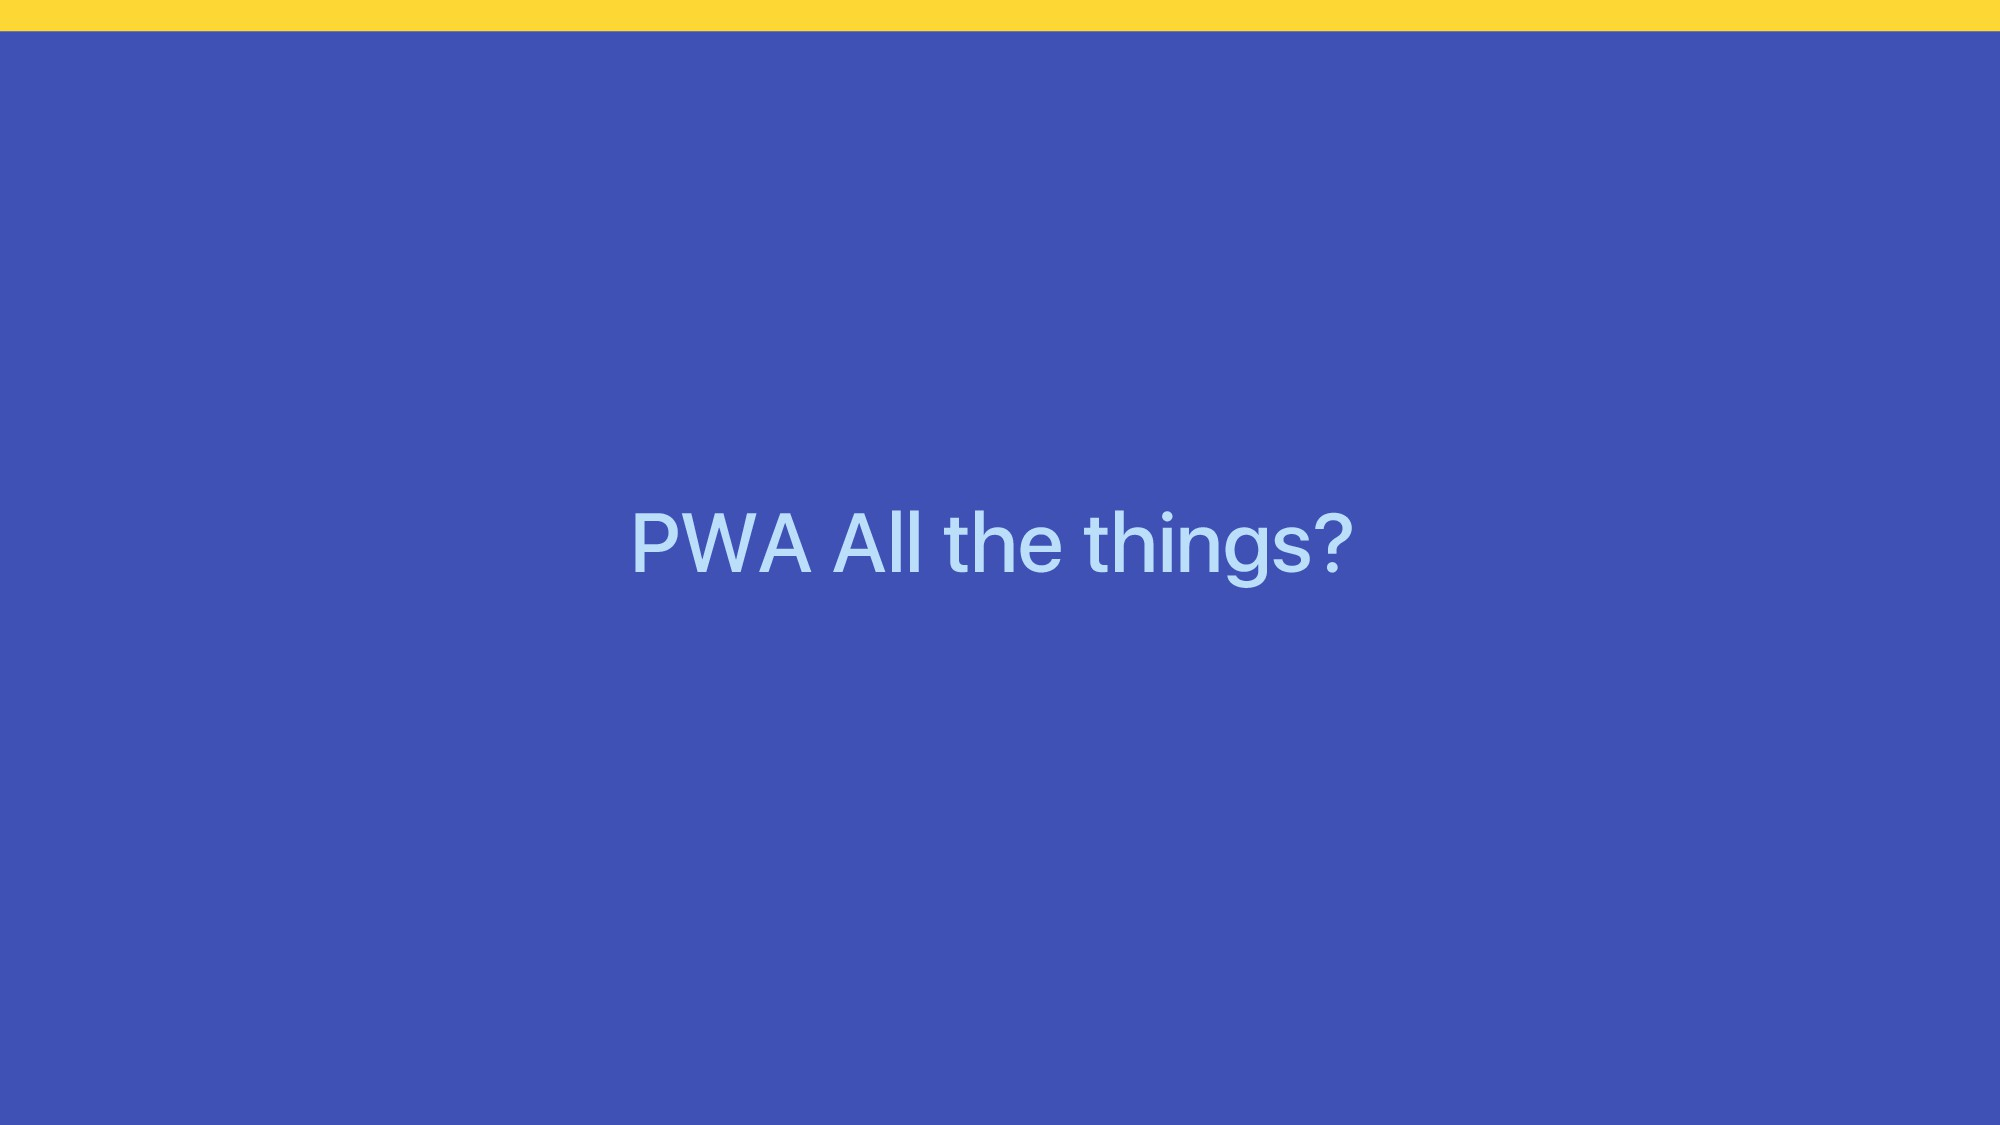 PWA All the things?